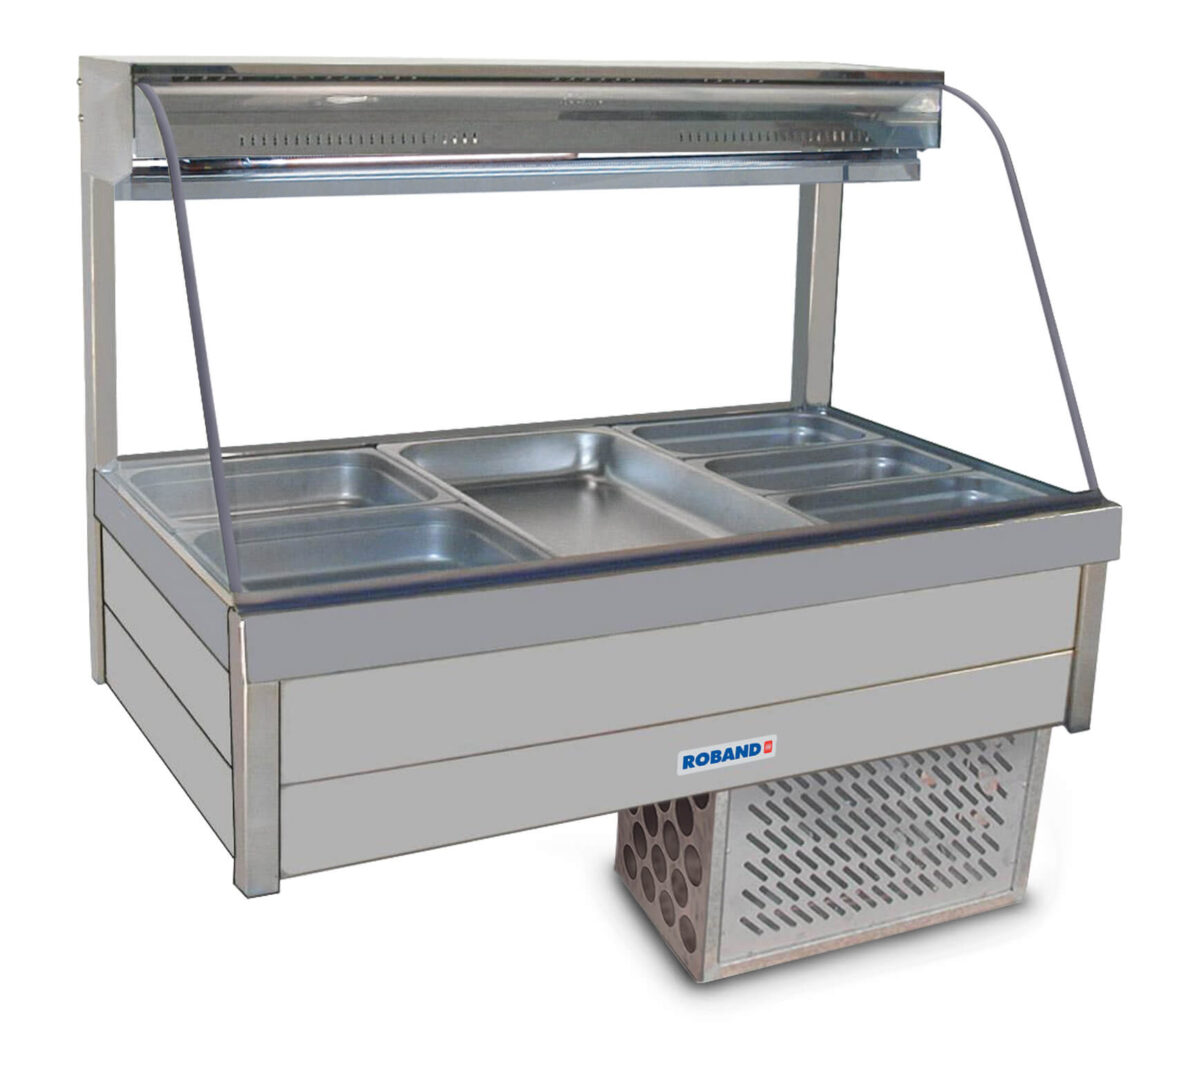 Roband Curved Glass Refrigerated Display Bar – Piped and Foamed only (no motor), 6 pans